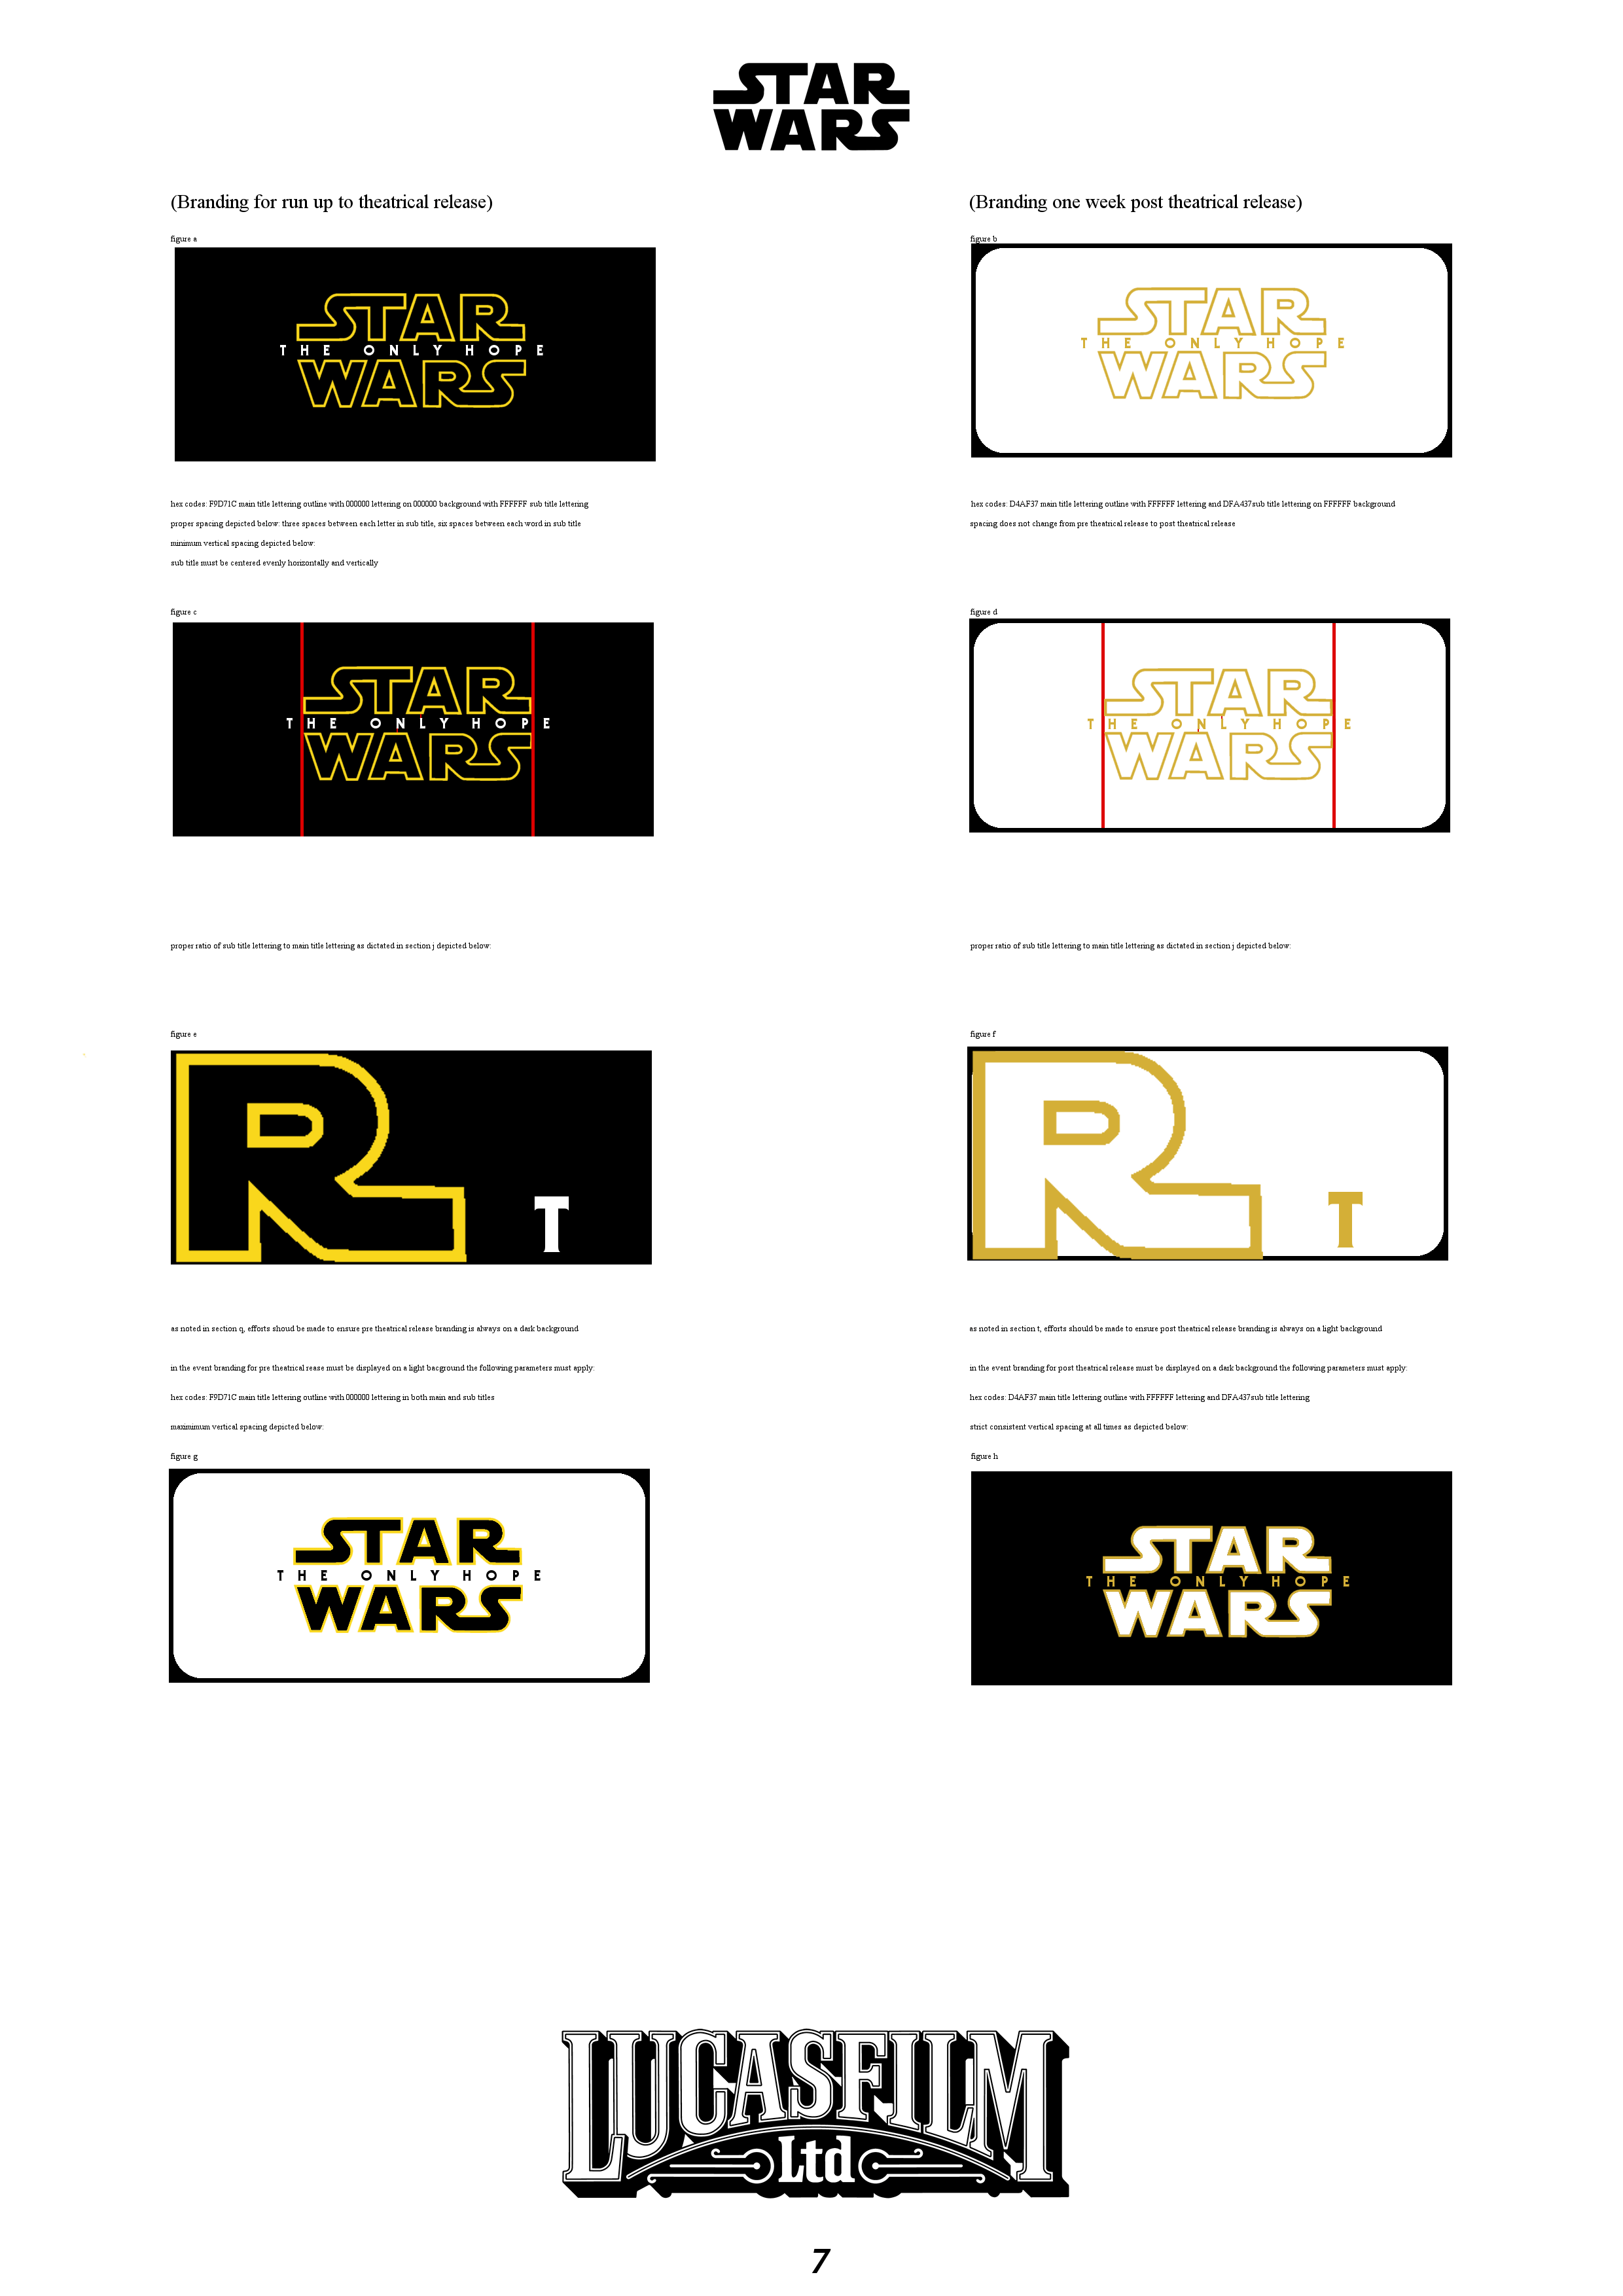 Star Wars Episode IX Title - Alleged Marketing Leak